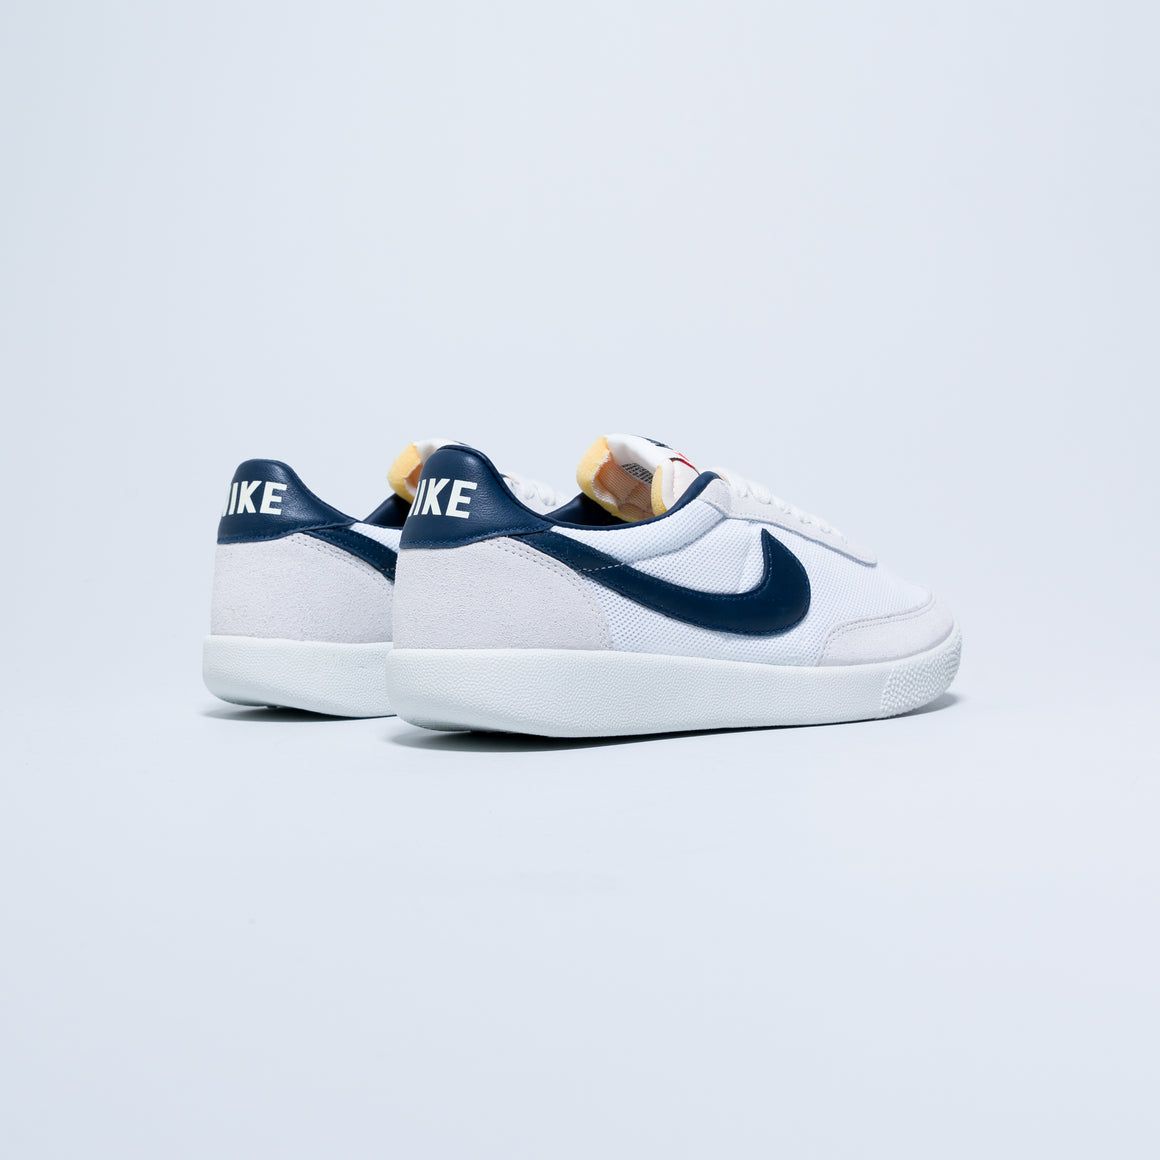 Killshot OG SP - Sail/Midnight Navy - Up There